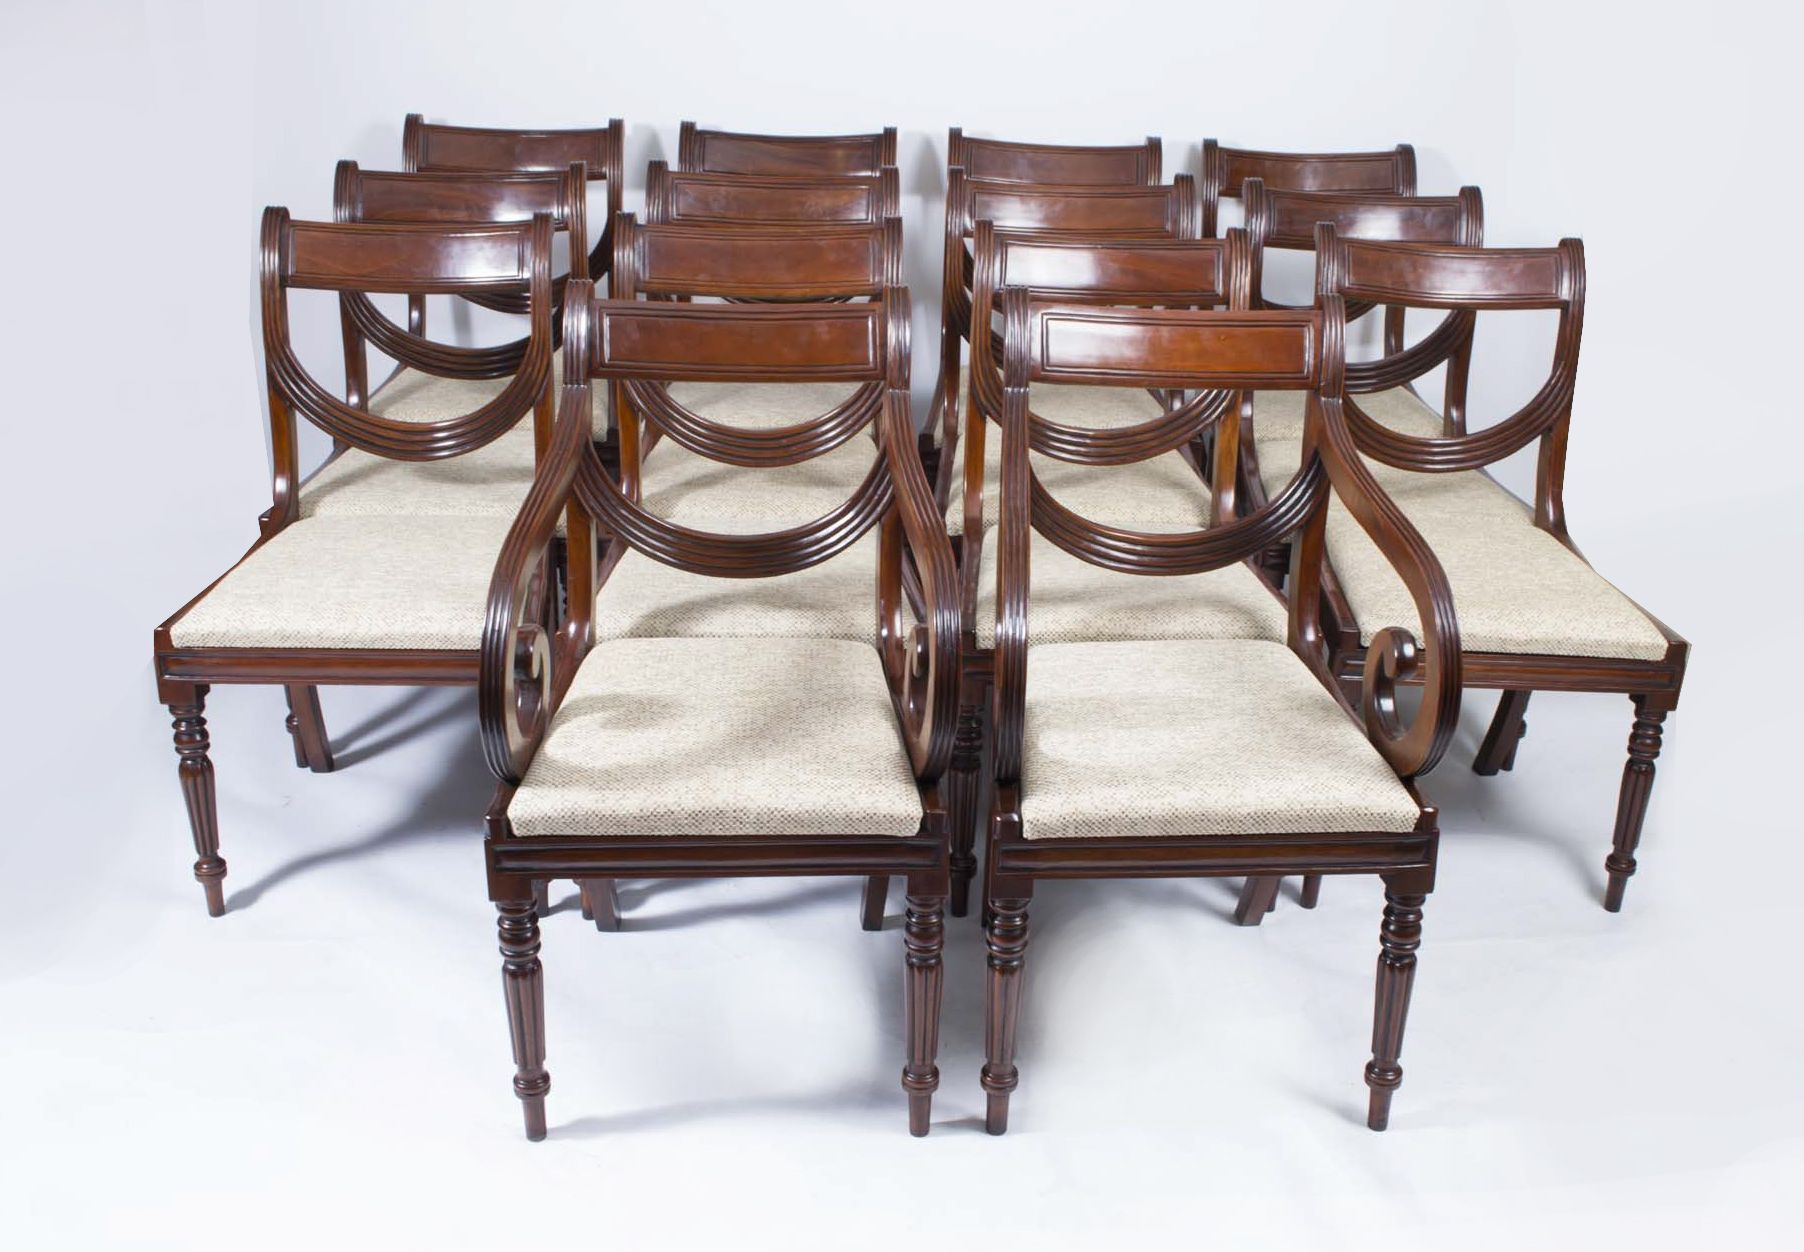 A magnificent set of 14 English Regency mahogany dining chairs